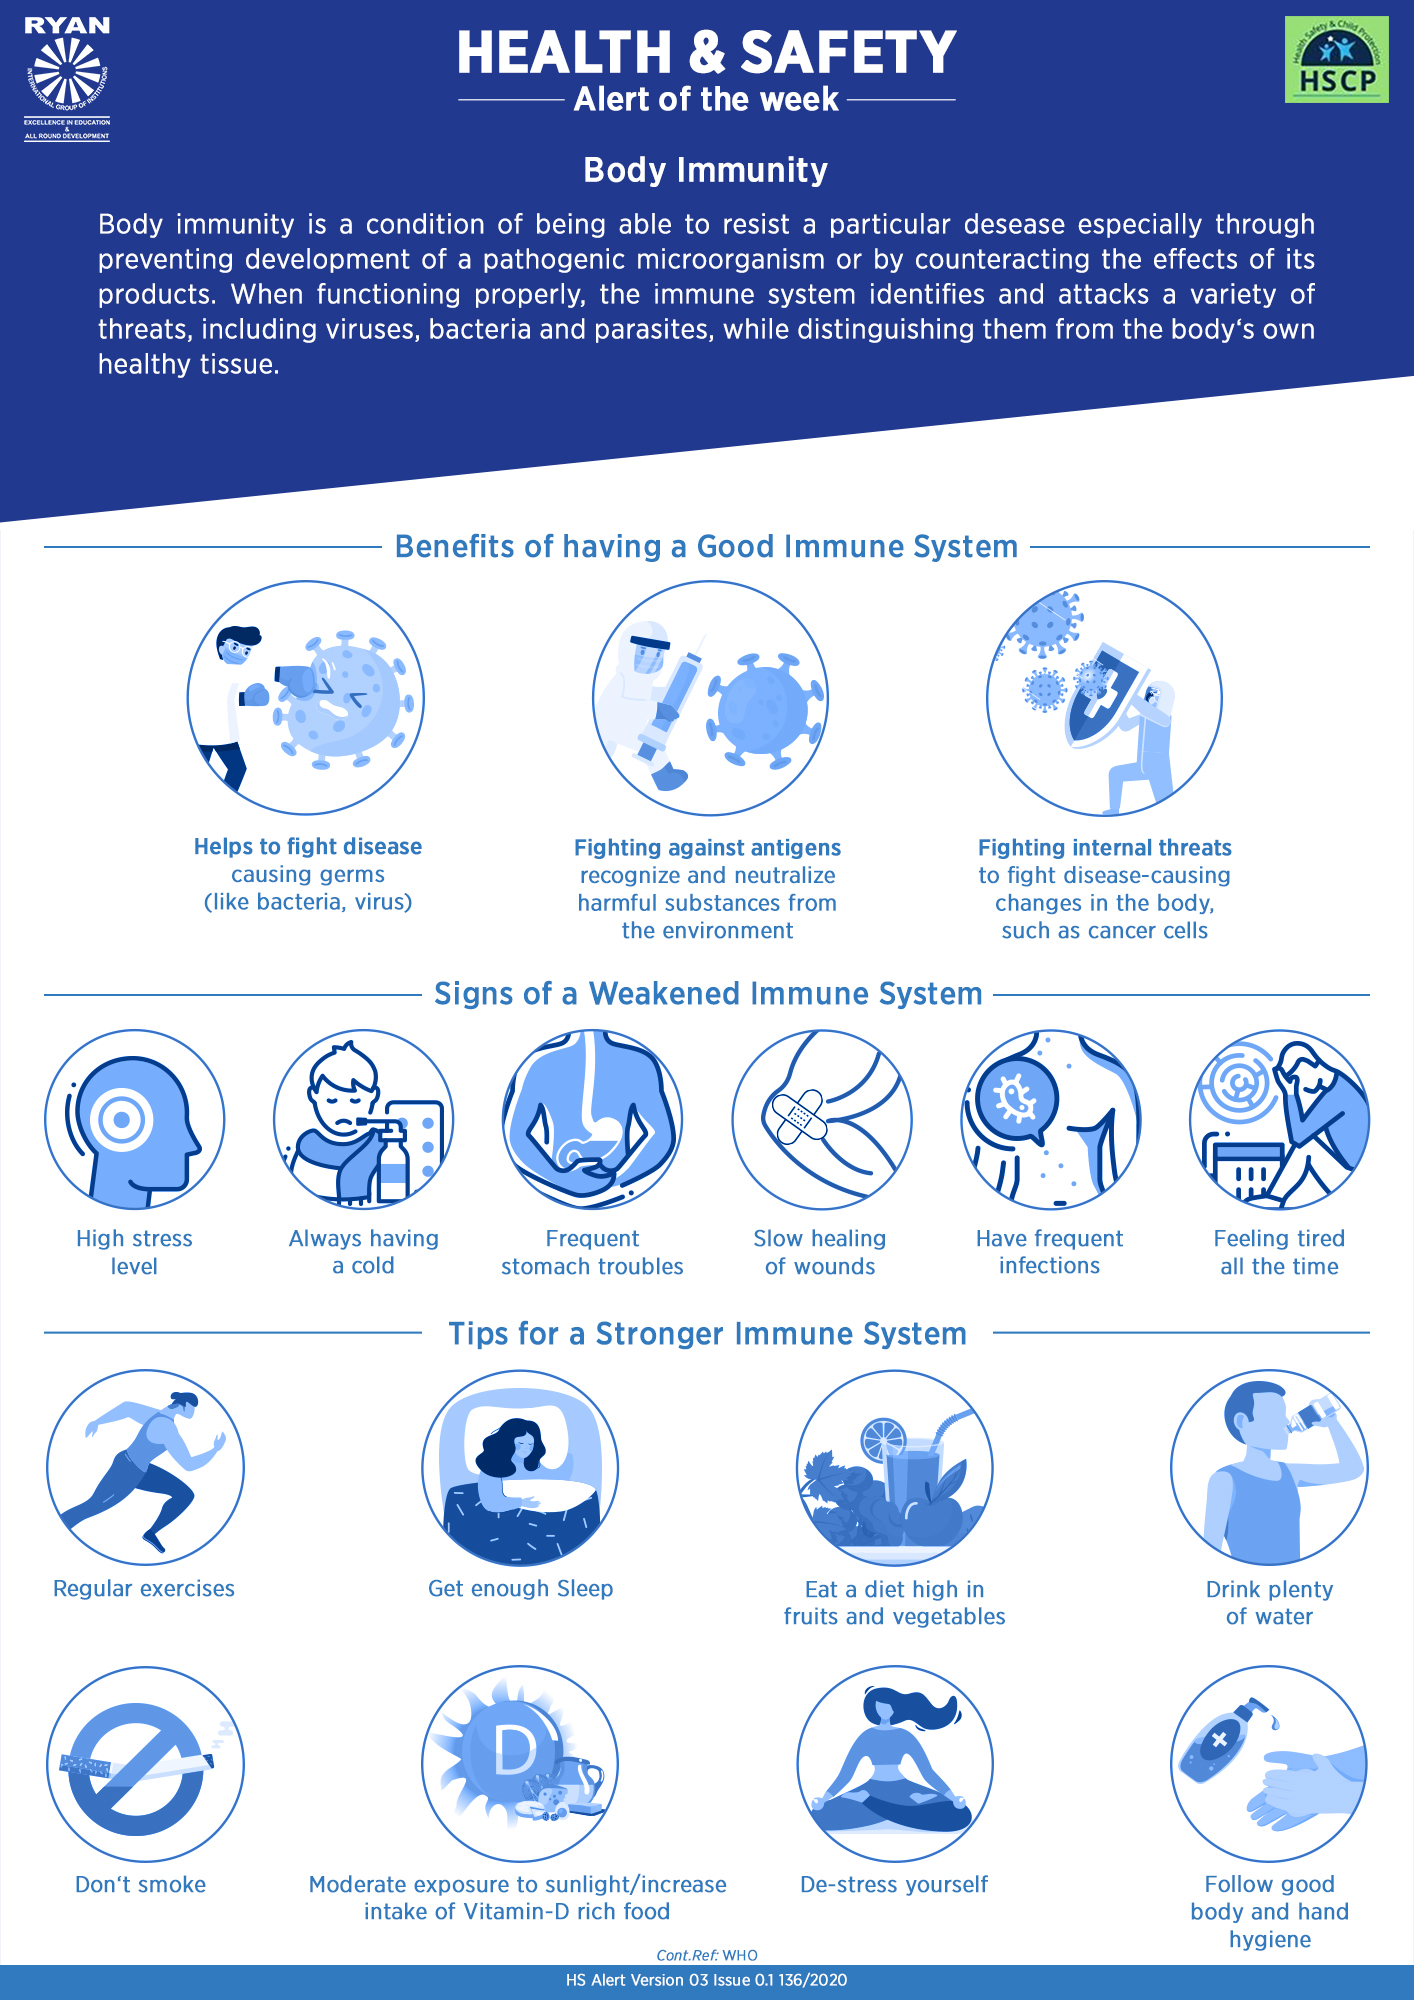 Ryan International School - Health and Safety - Signs of good and weak immune system and tips to boost your immunity